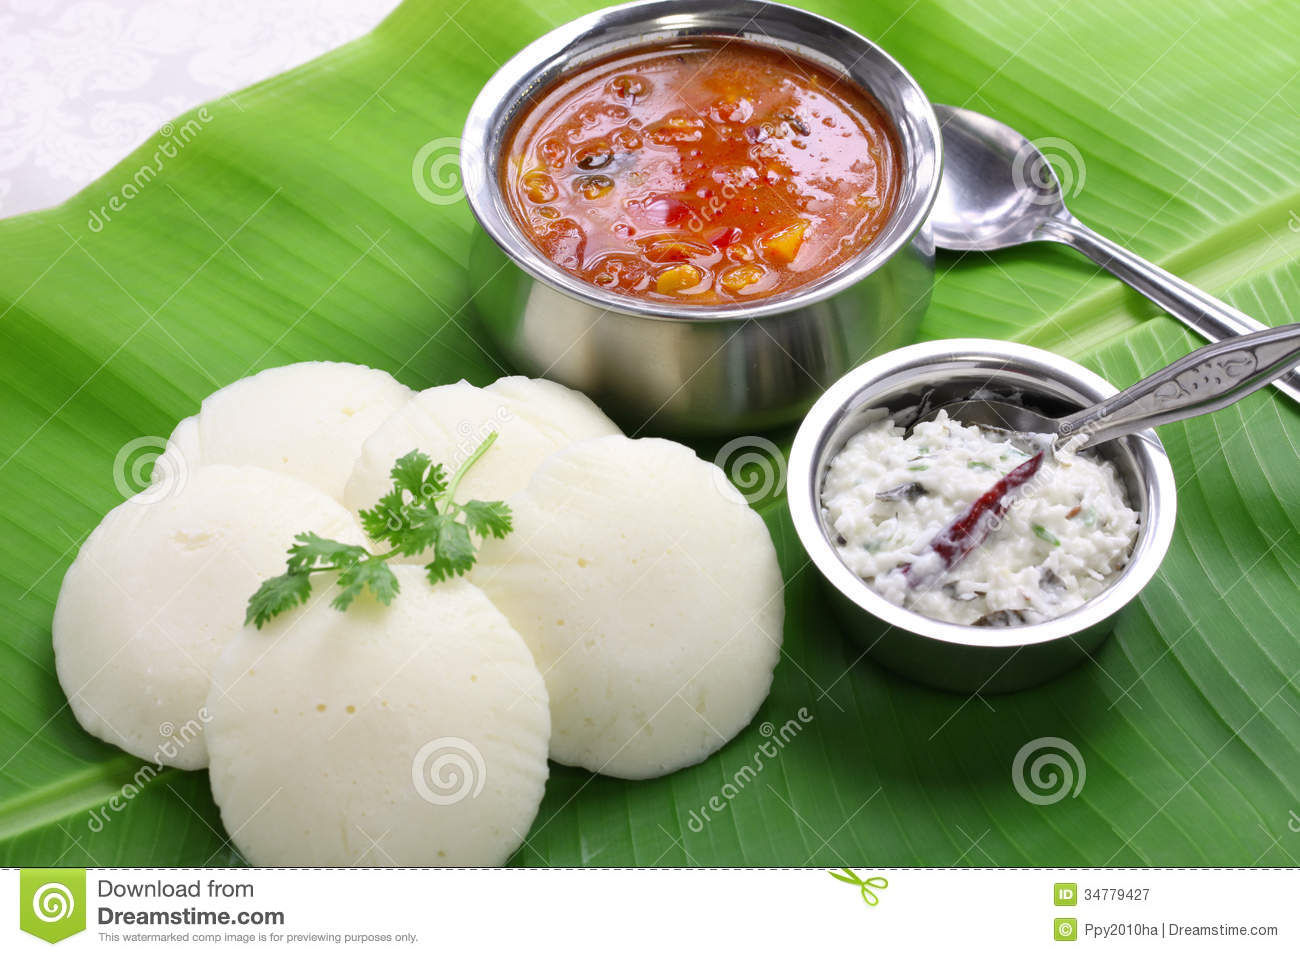 How to perfect the idli and vada batter